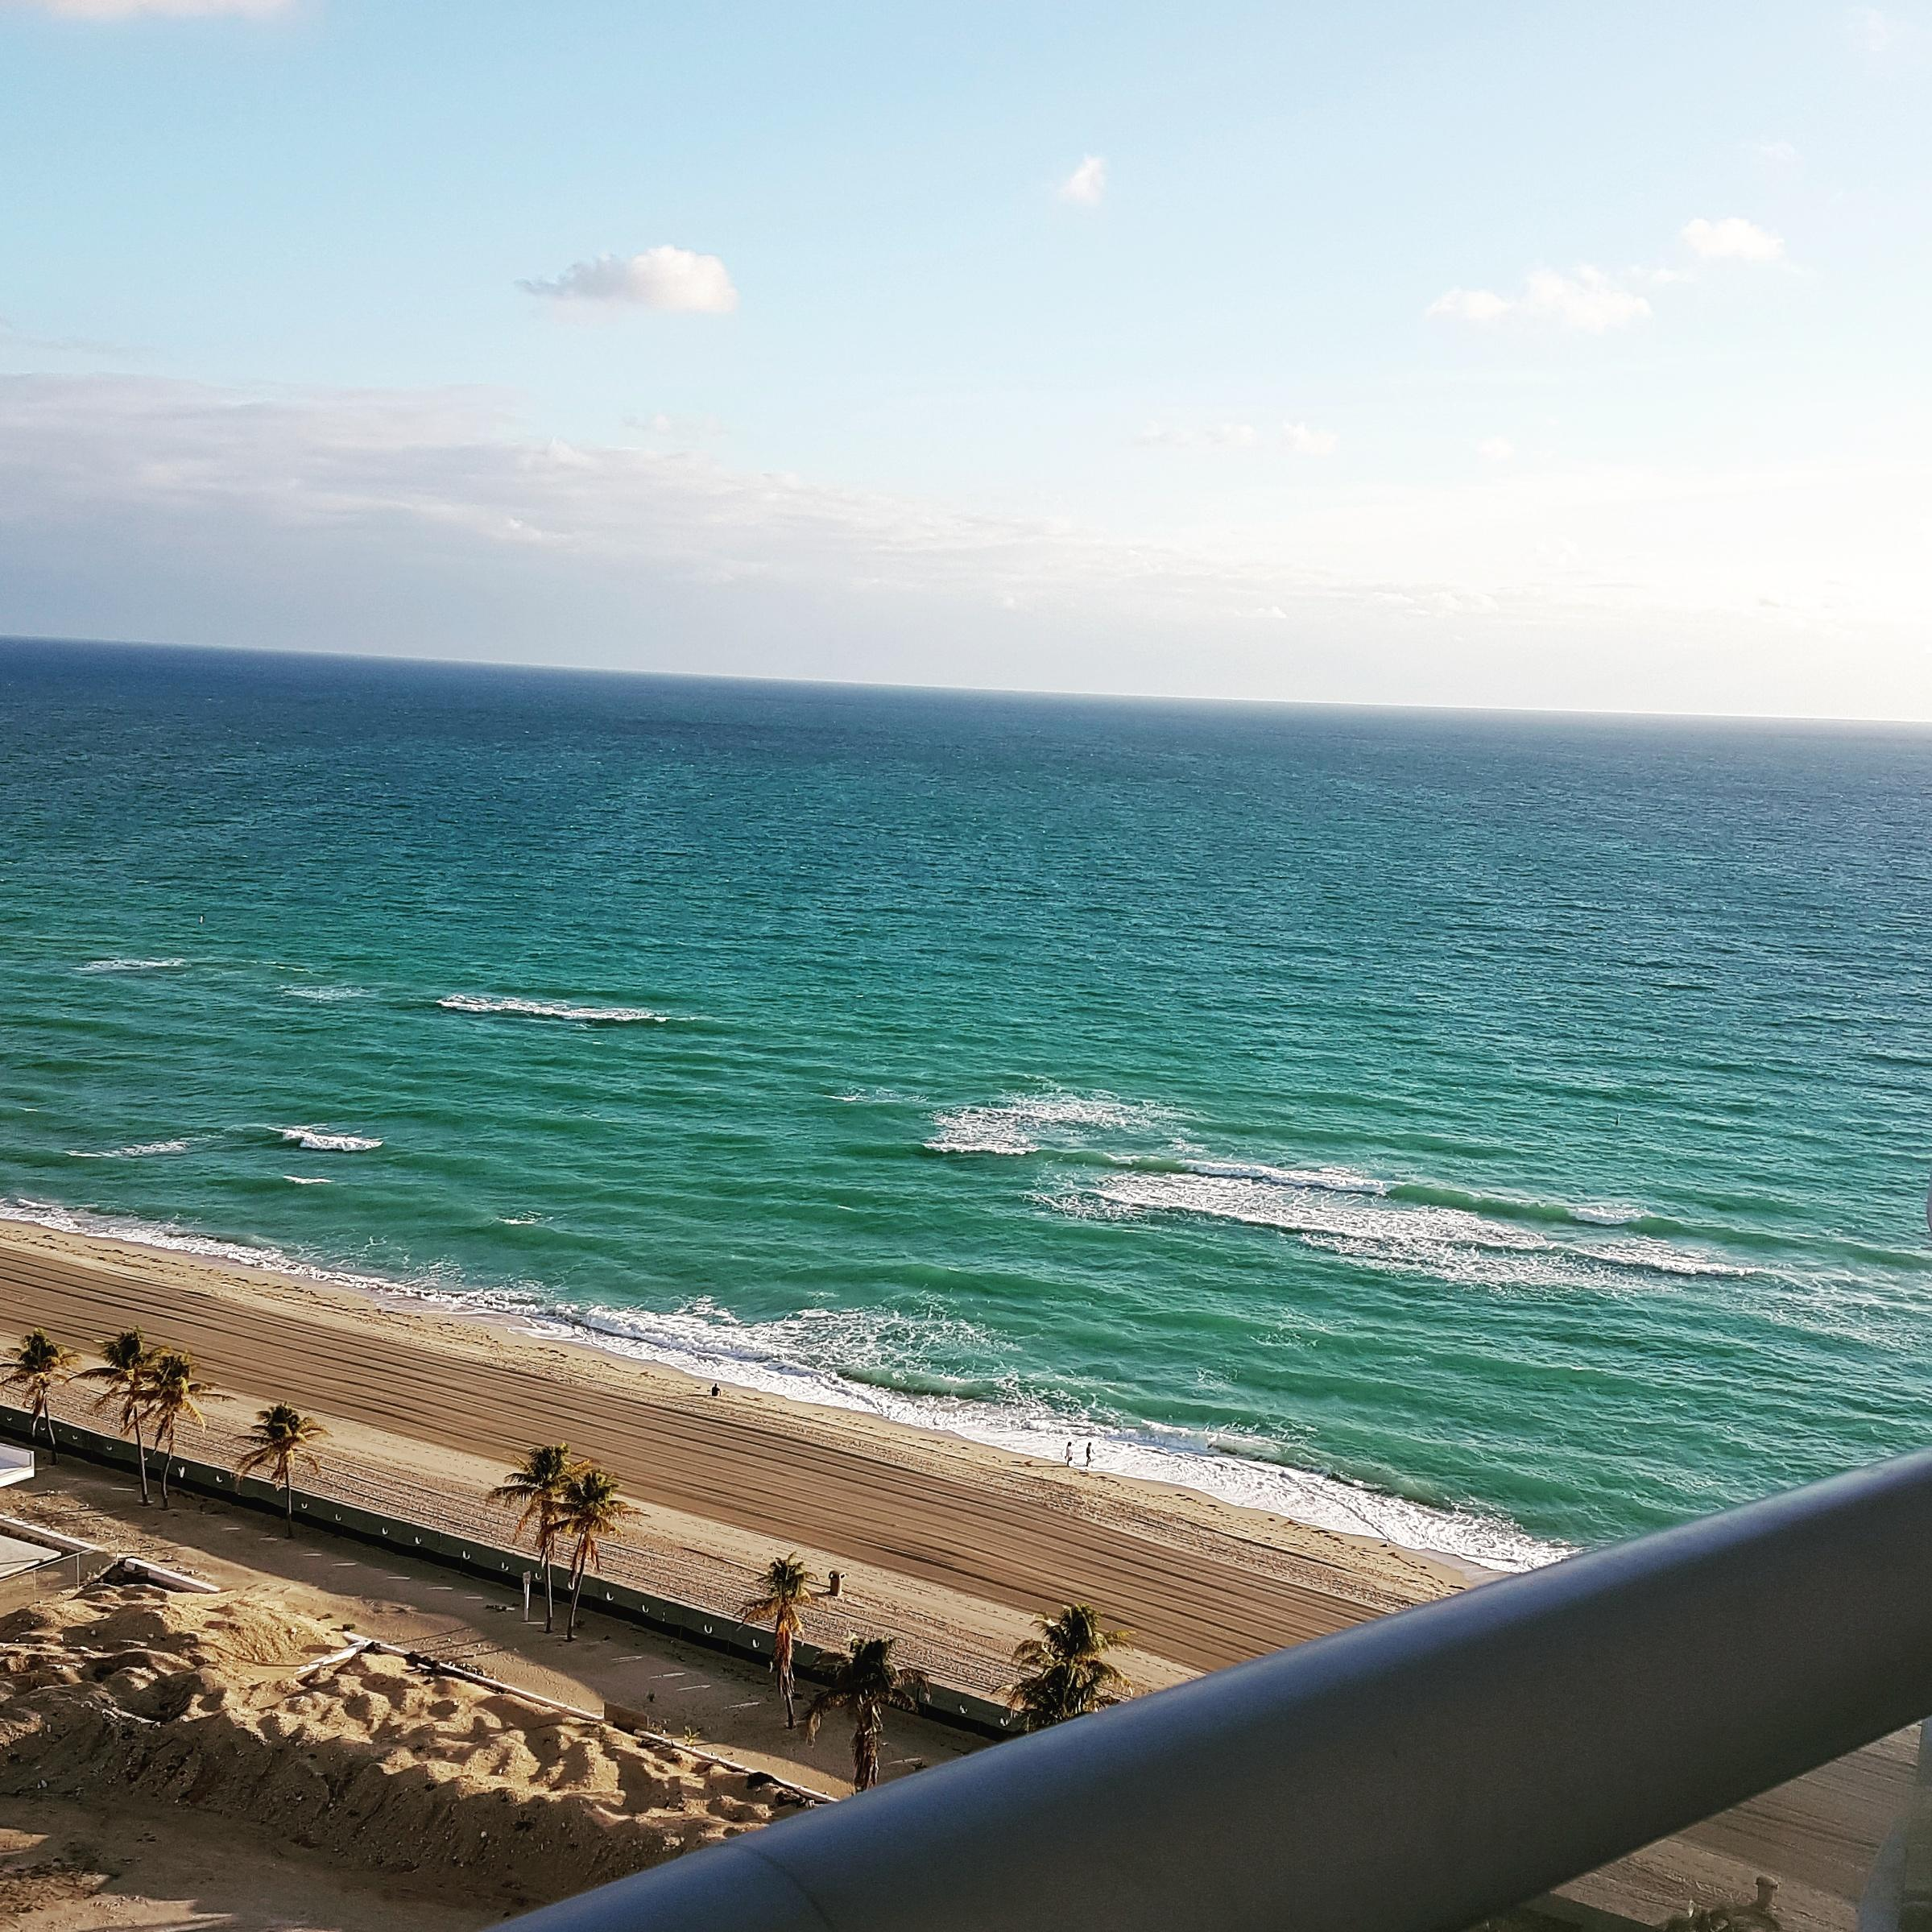 That's the side of the balcony view. The best ones are the ocean view rooms, because you have a 360 ocean view.